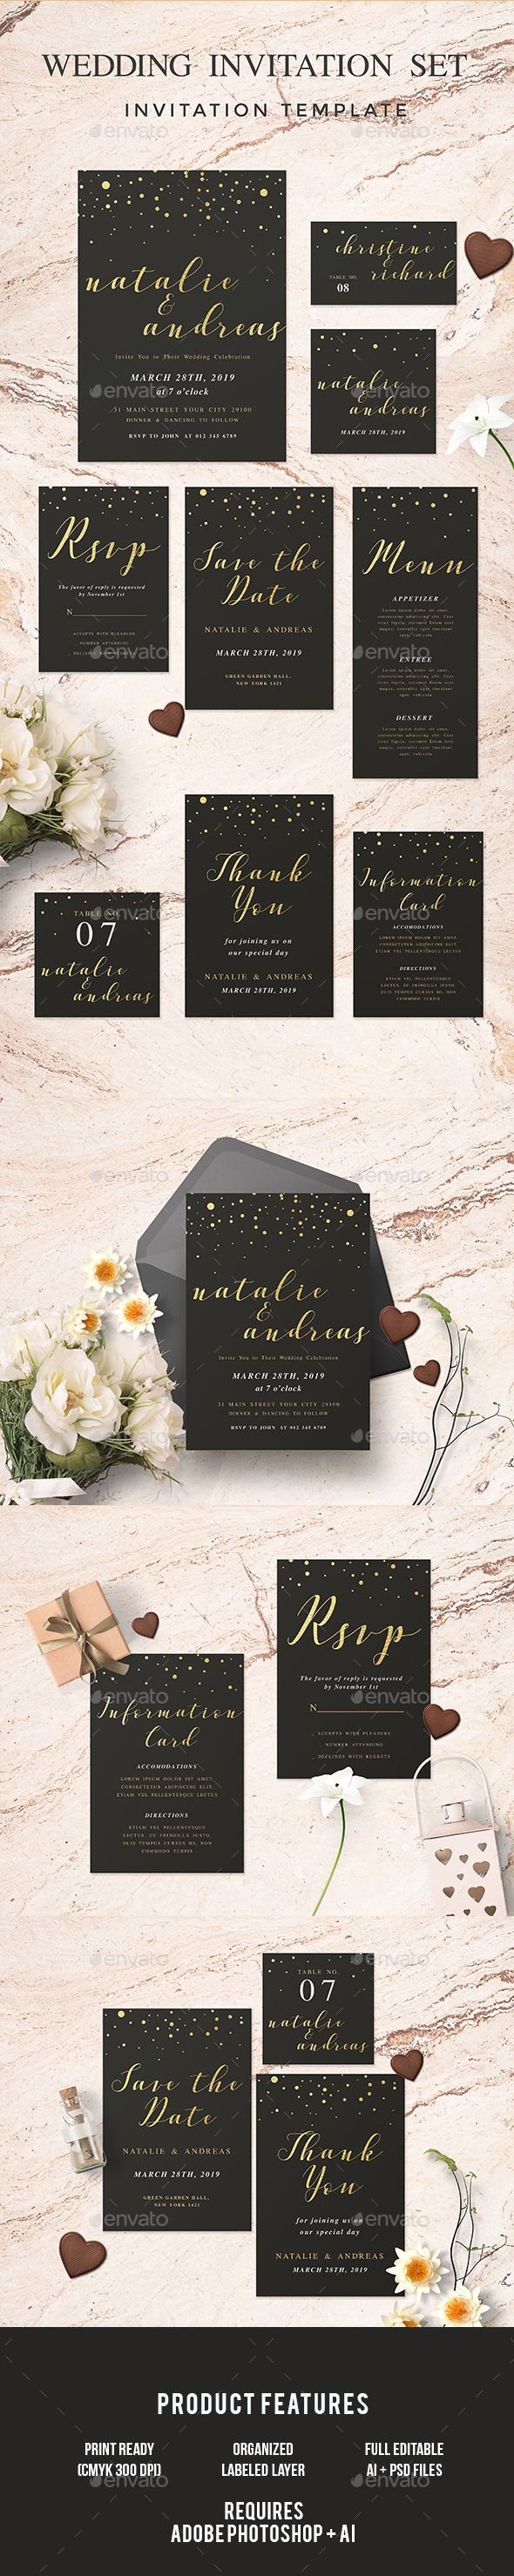 wedding invitation formats%0A how to write a resigning letter